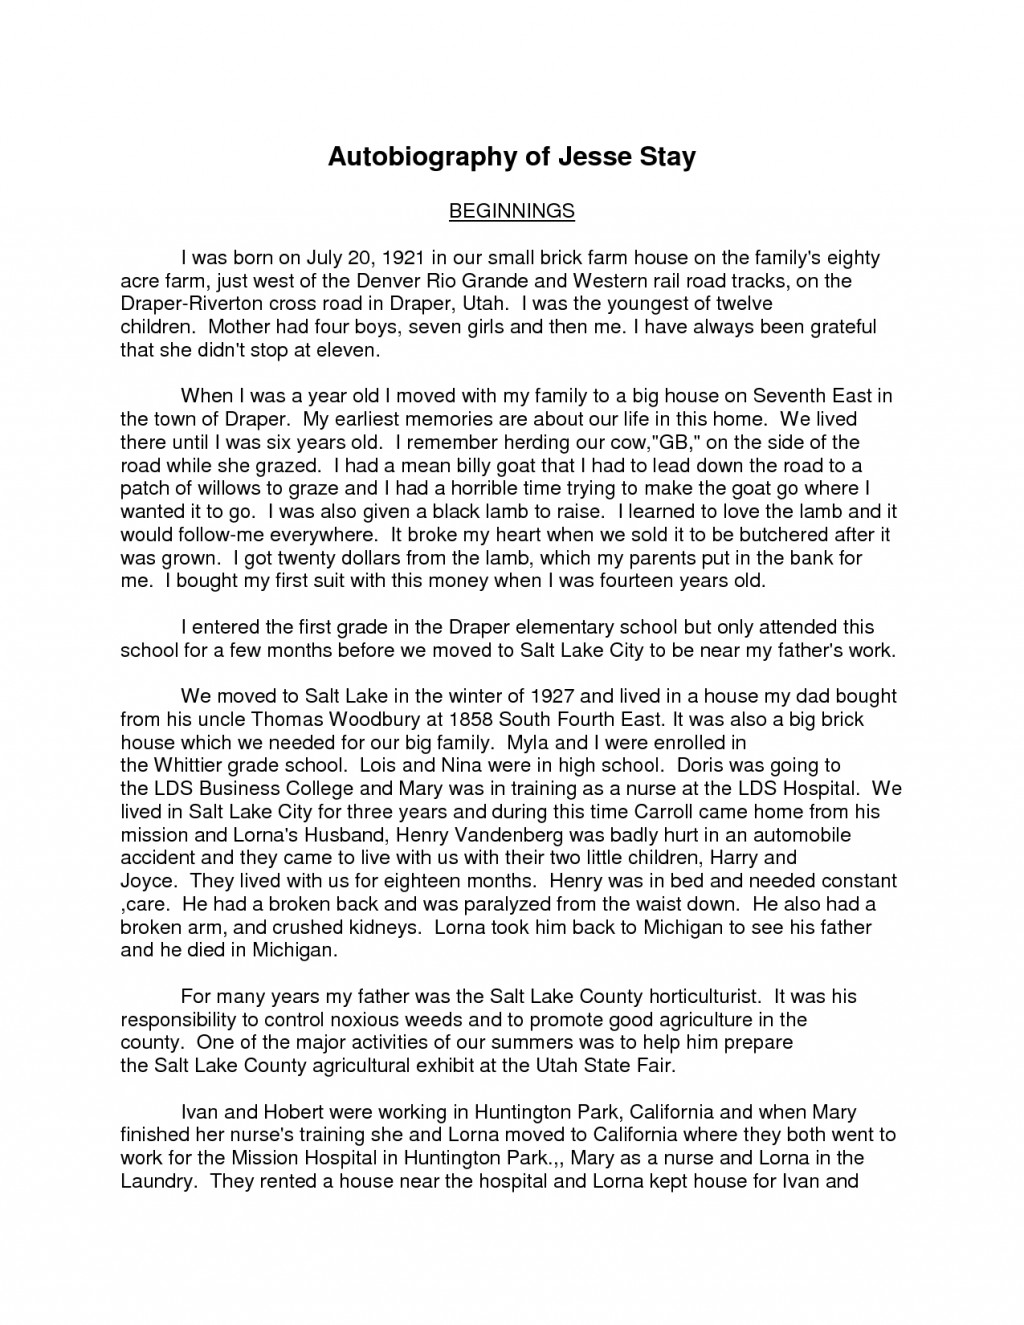 021 Essay Example How To Write Autobiography On Yourself Goal Blockety Co Great Examples High School Of My Samples Good Therefore S Introductions Expectations Scholarship Personal Gatsby Formidable About Tagalog A Narrative Introduction Large